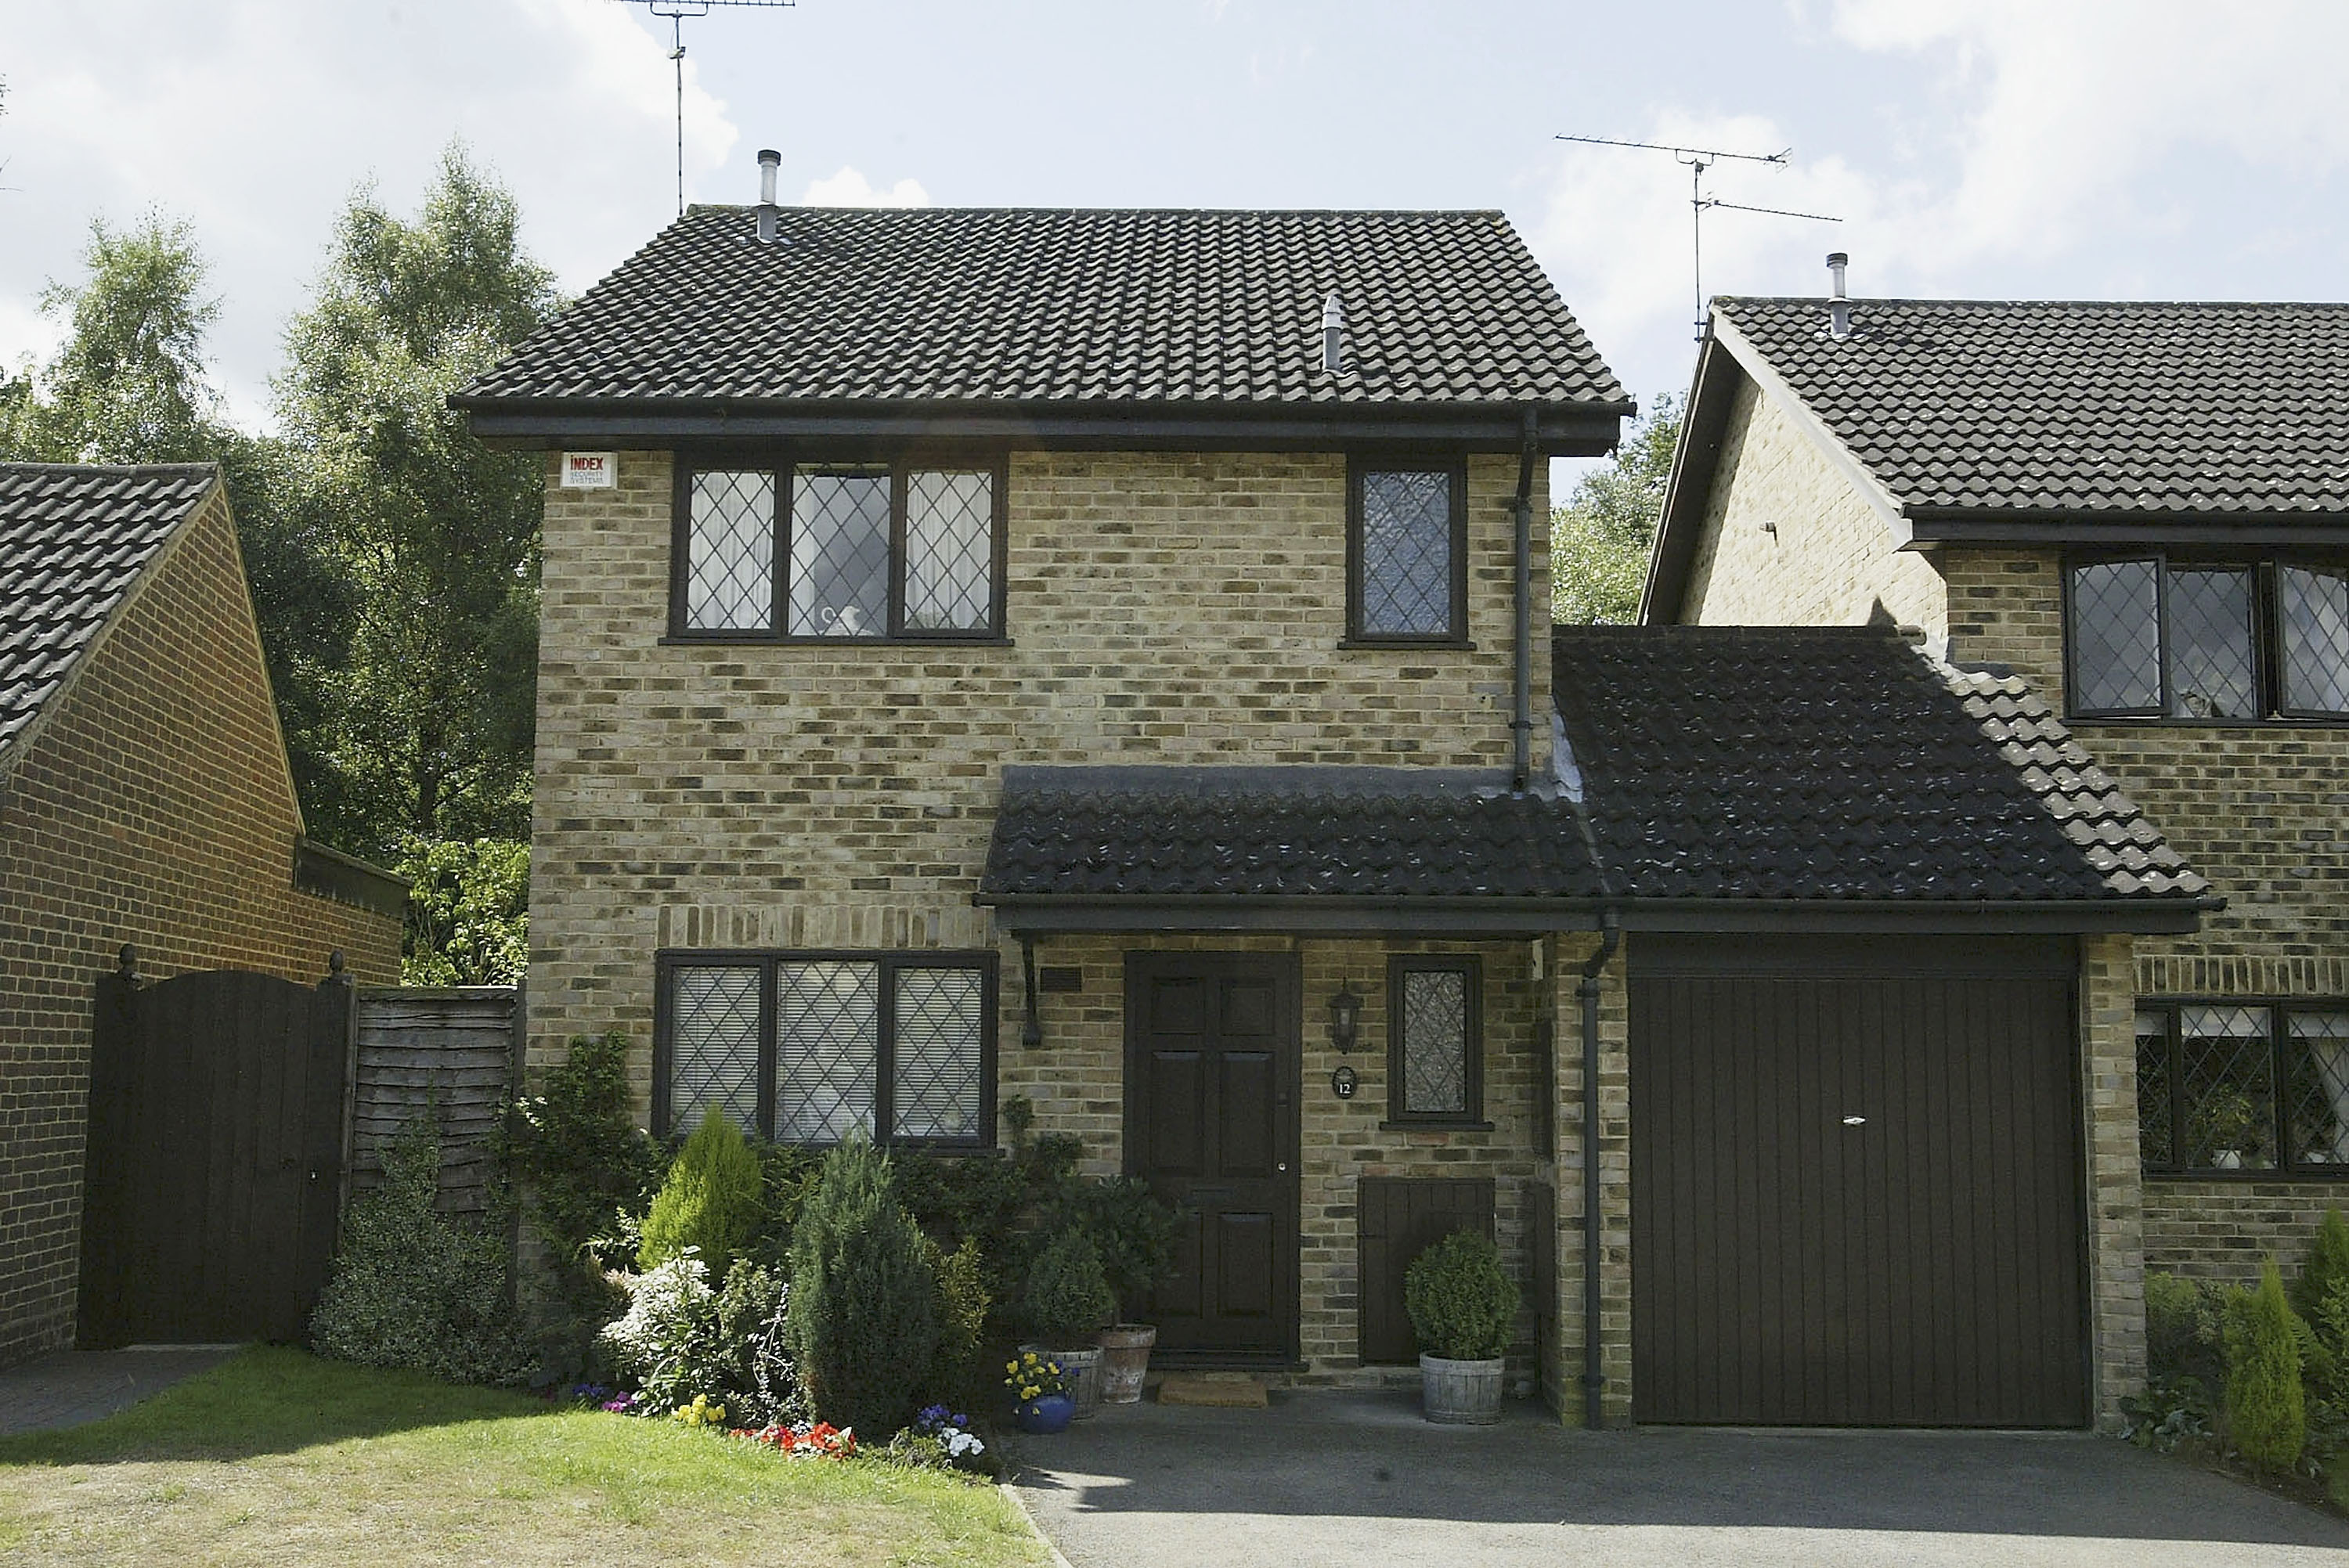 Real Privet Drive Harry Potter films